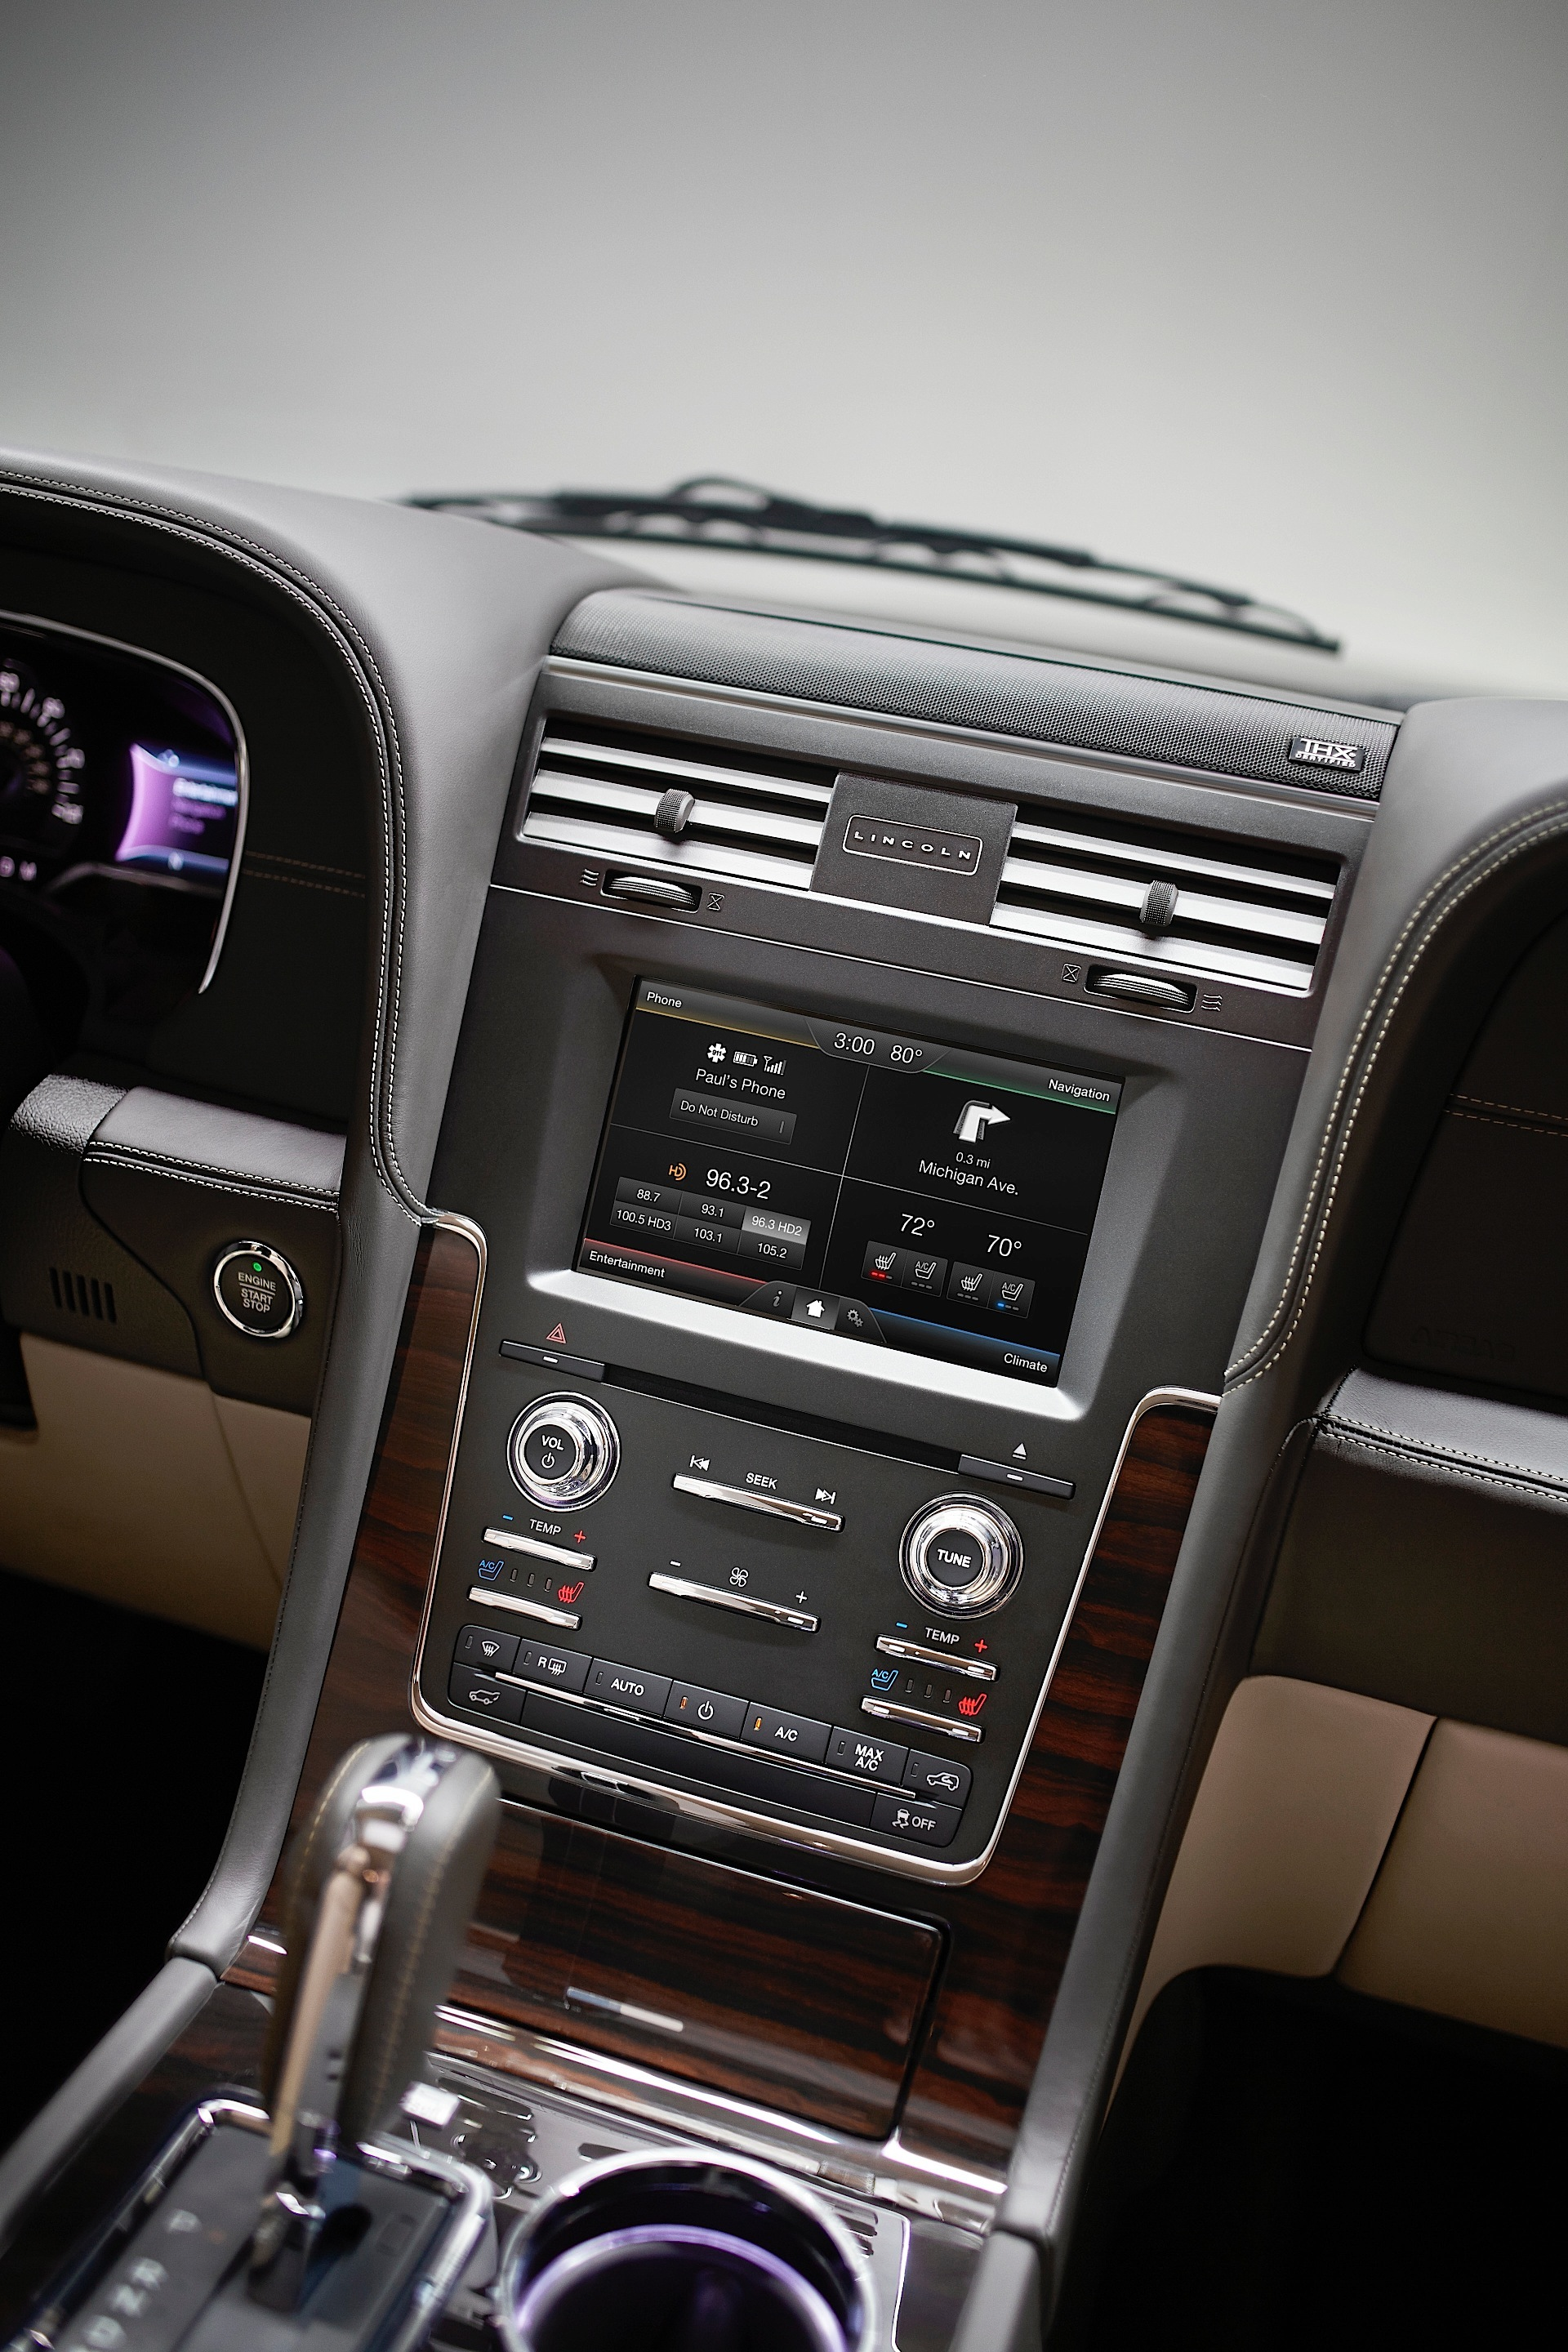 lincoln navigator ford autoevolution motor introduces level beauty power company interior cars motortrend system specs center machinespider autos box